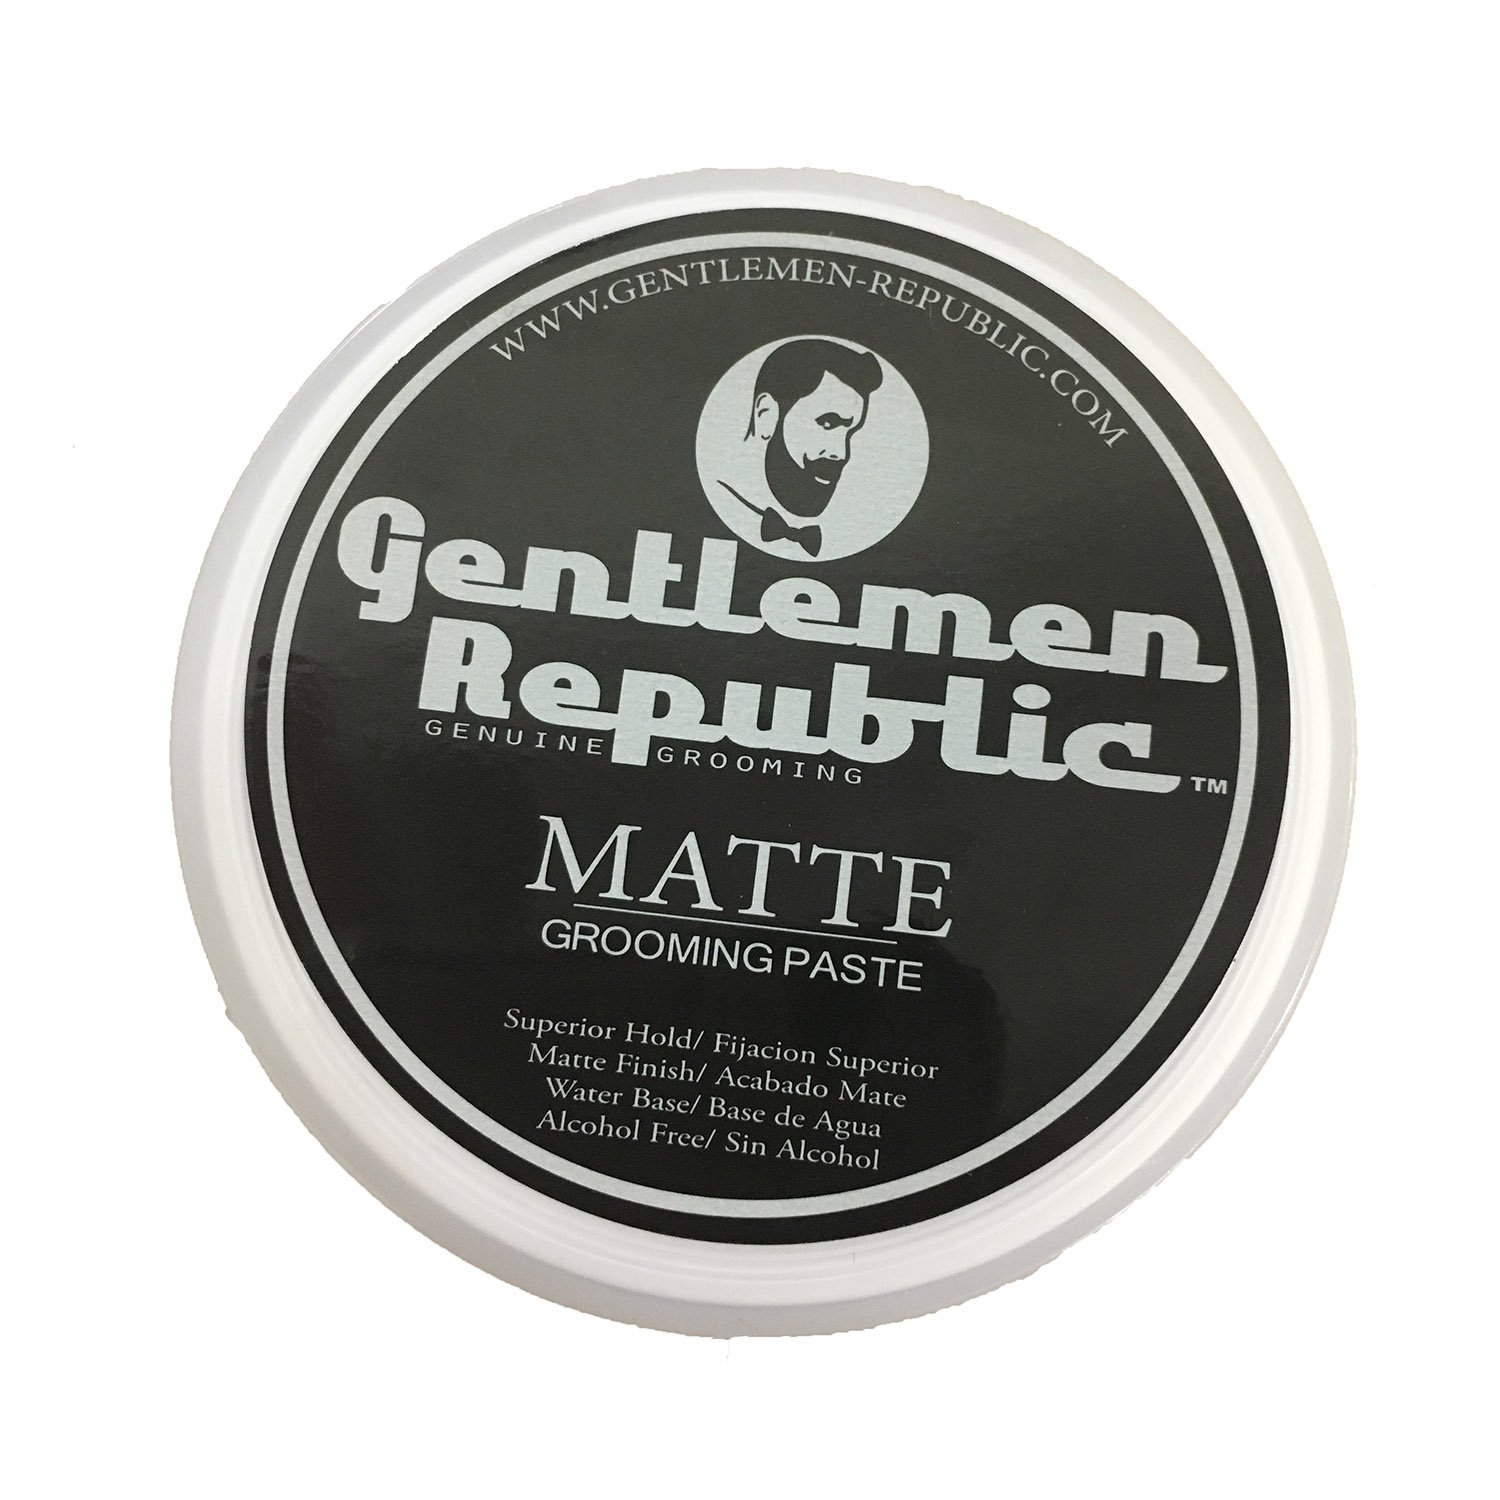 Gentlemen Republic Matte Grooming Paste Genuine Grooming for Men - 4 oz